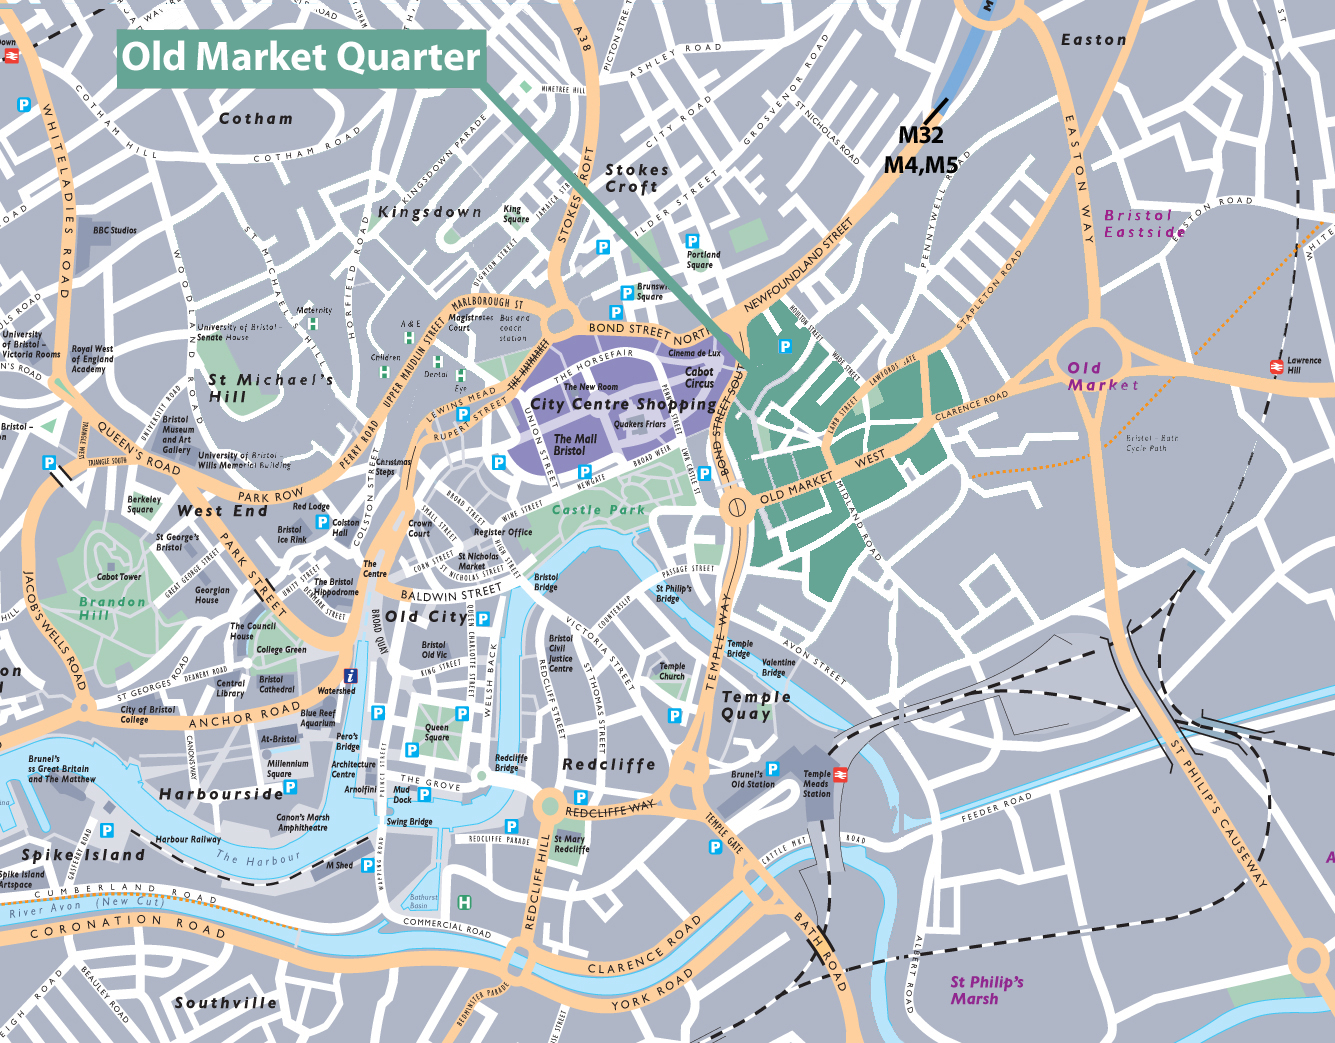 old market Quarter location map